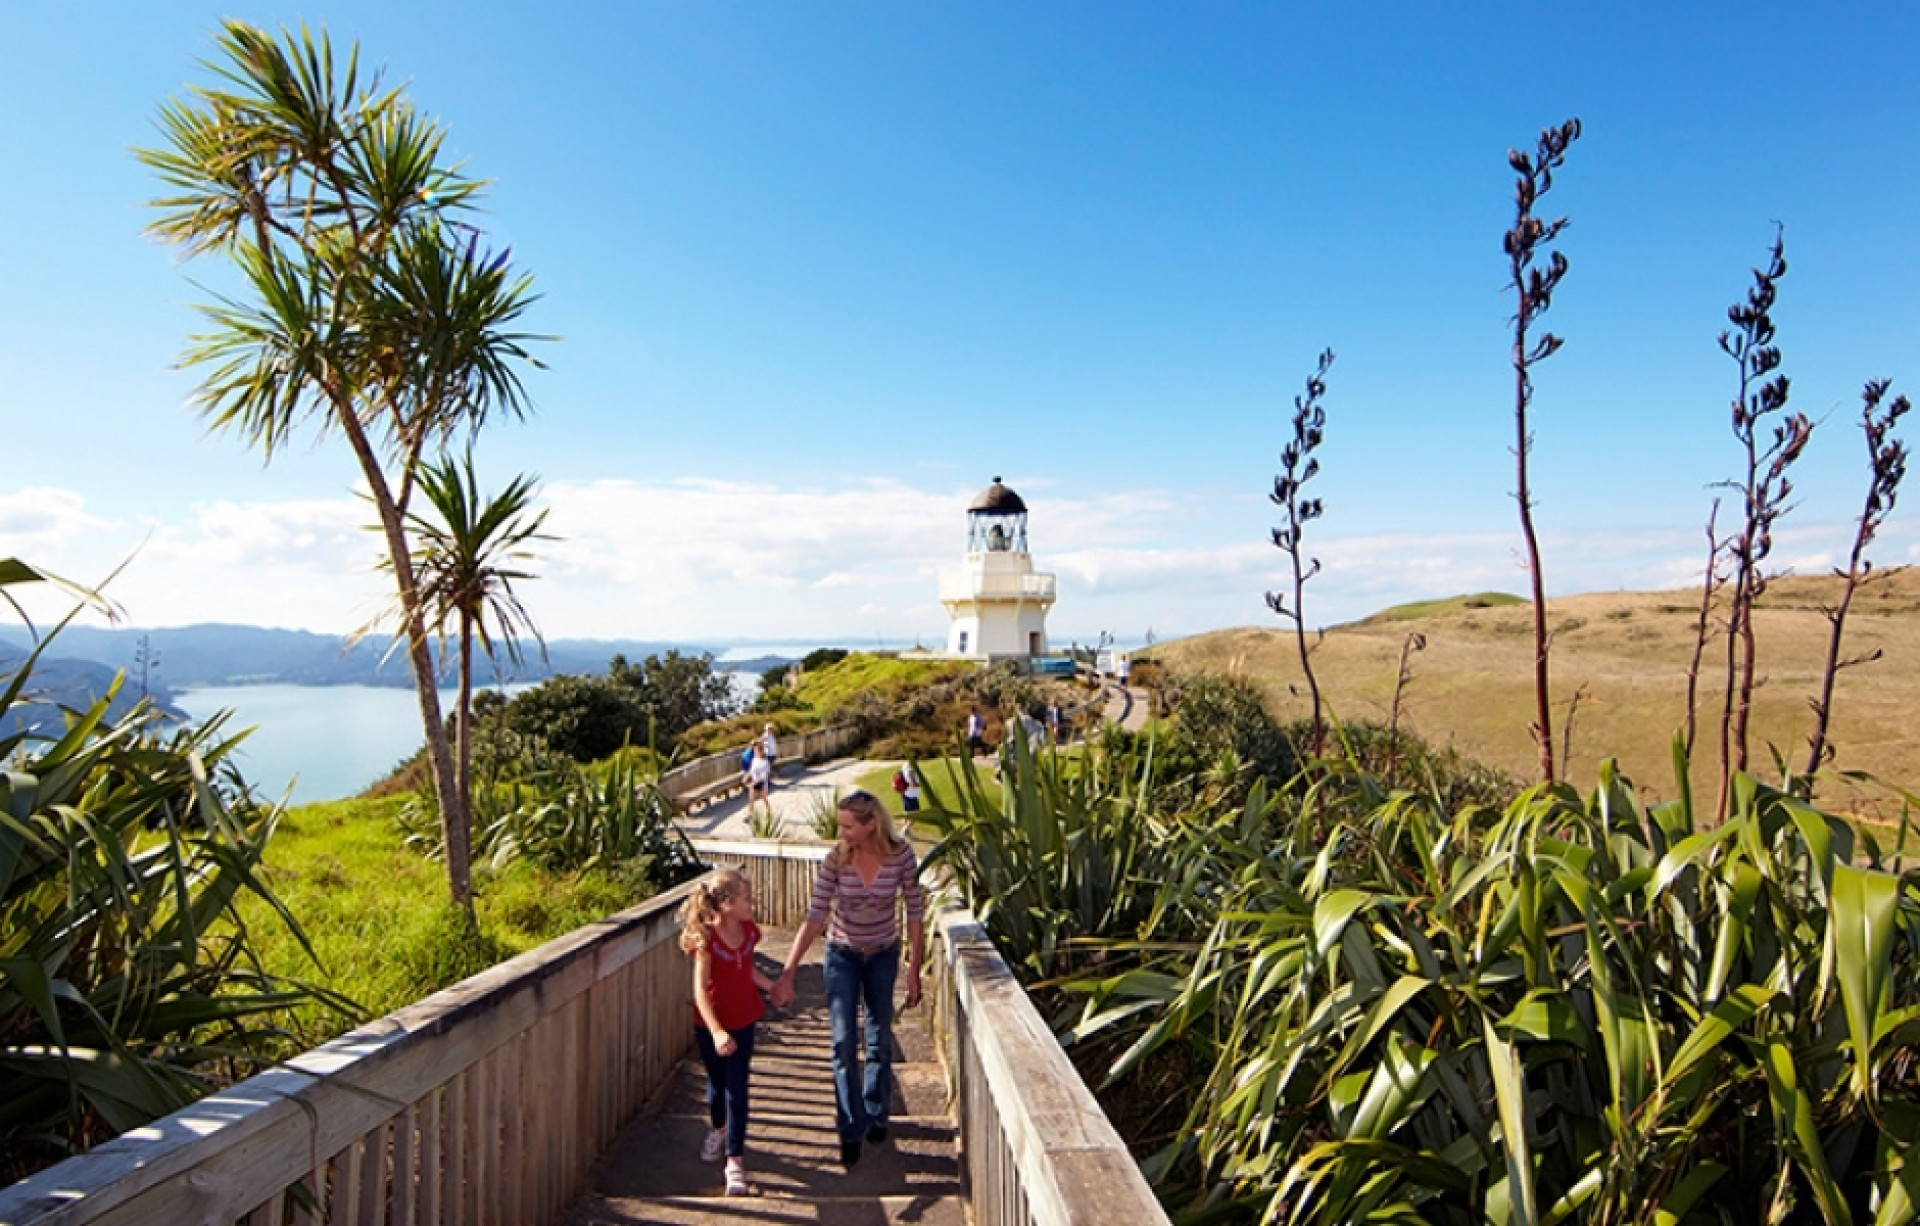 Awhitu Peninsula Manukau Heads Lighthouse and Castaways Oceanview Resort